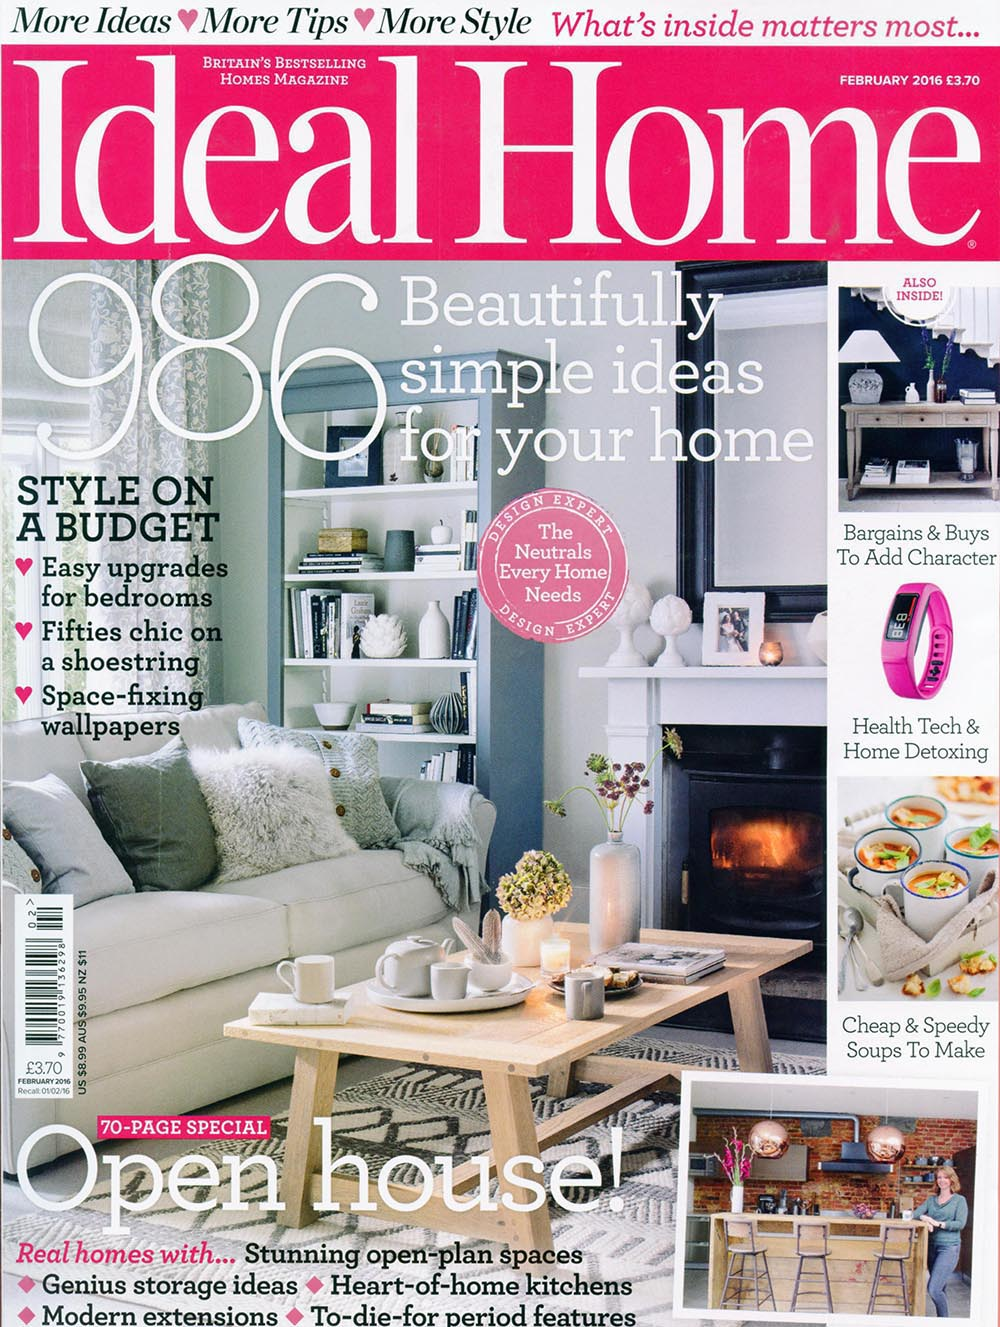 Ideal Home February 2016